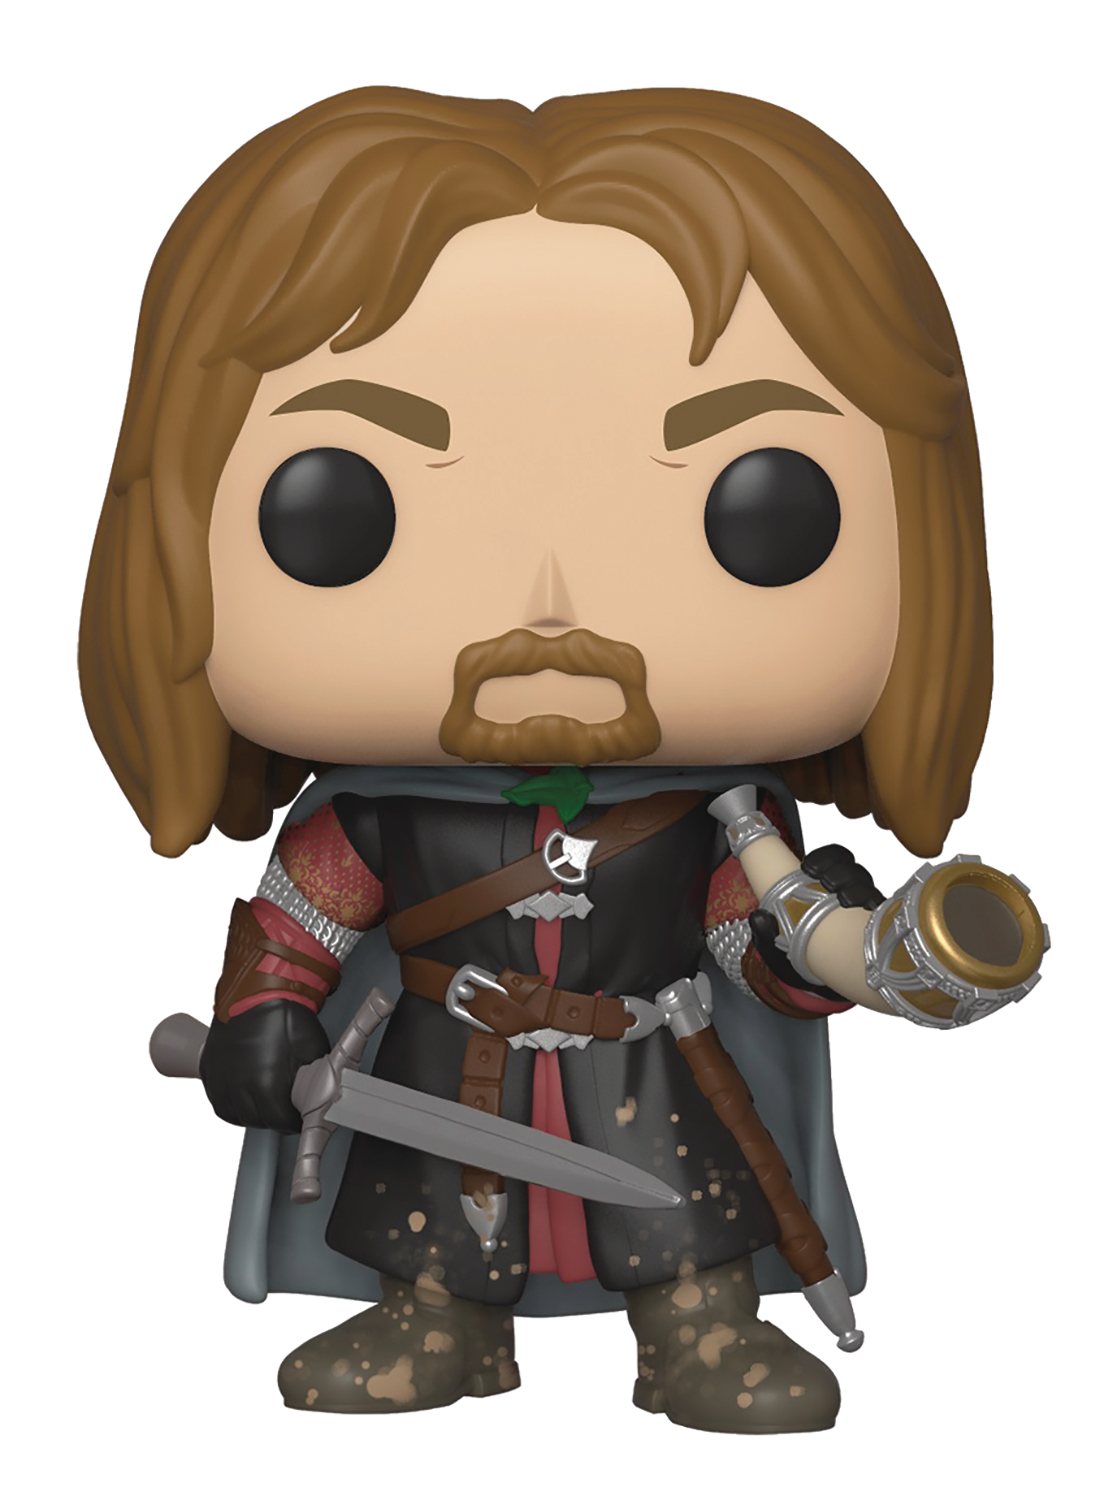 POP MOVIES LORD OF THE RINGS S4 BOROMIR VINYL FIG